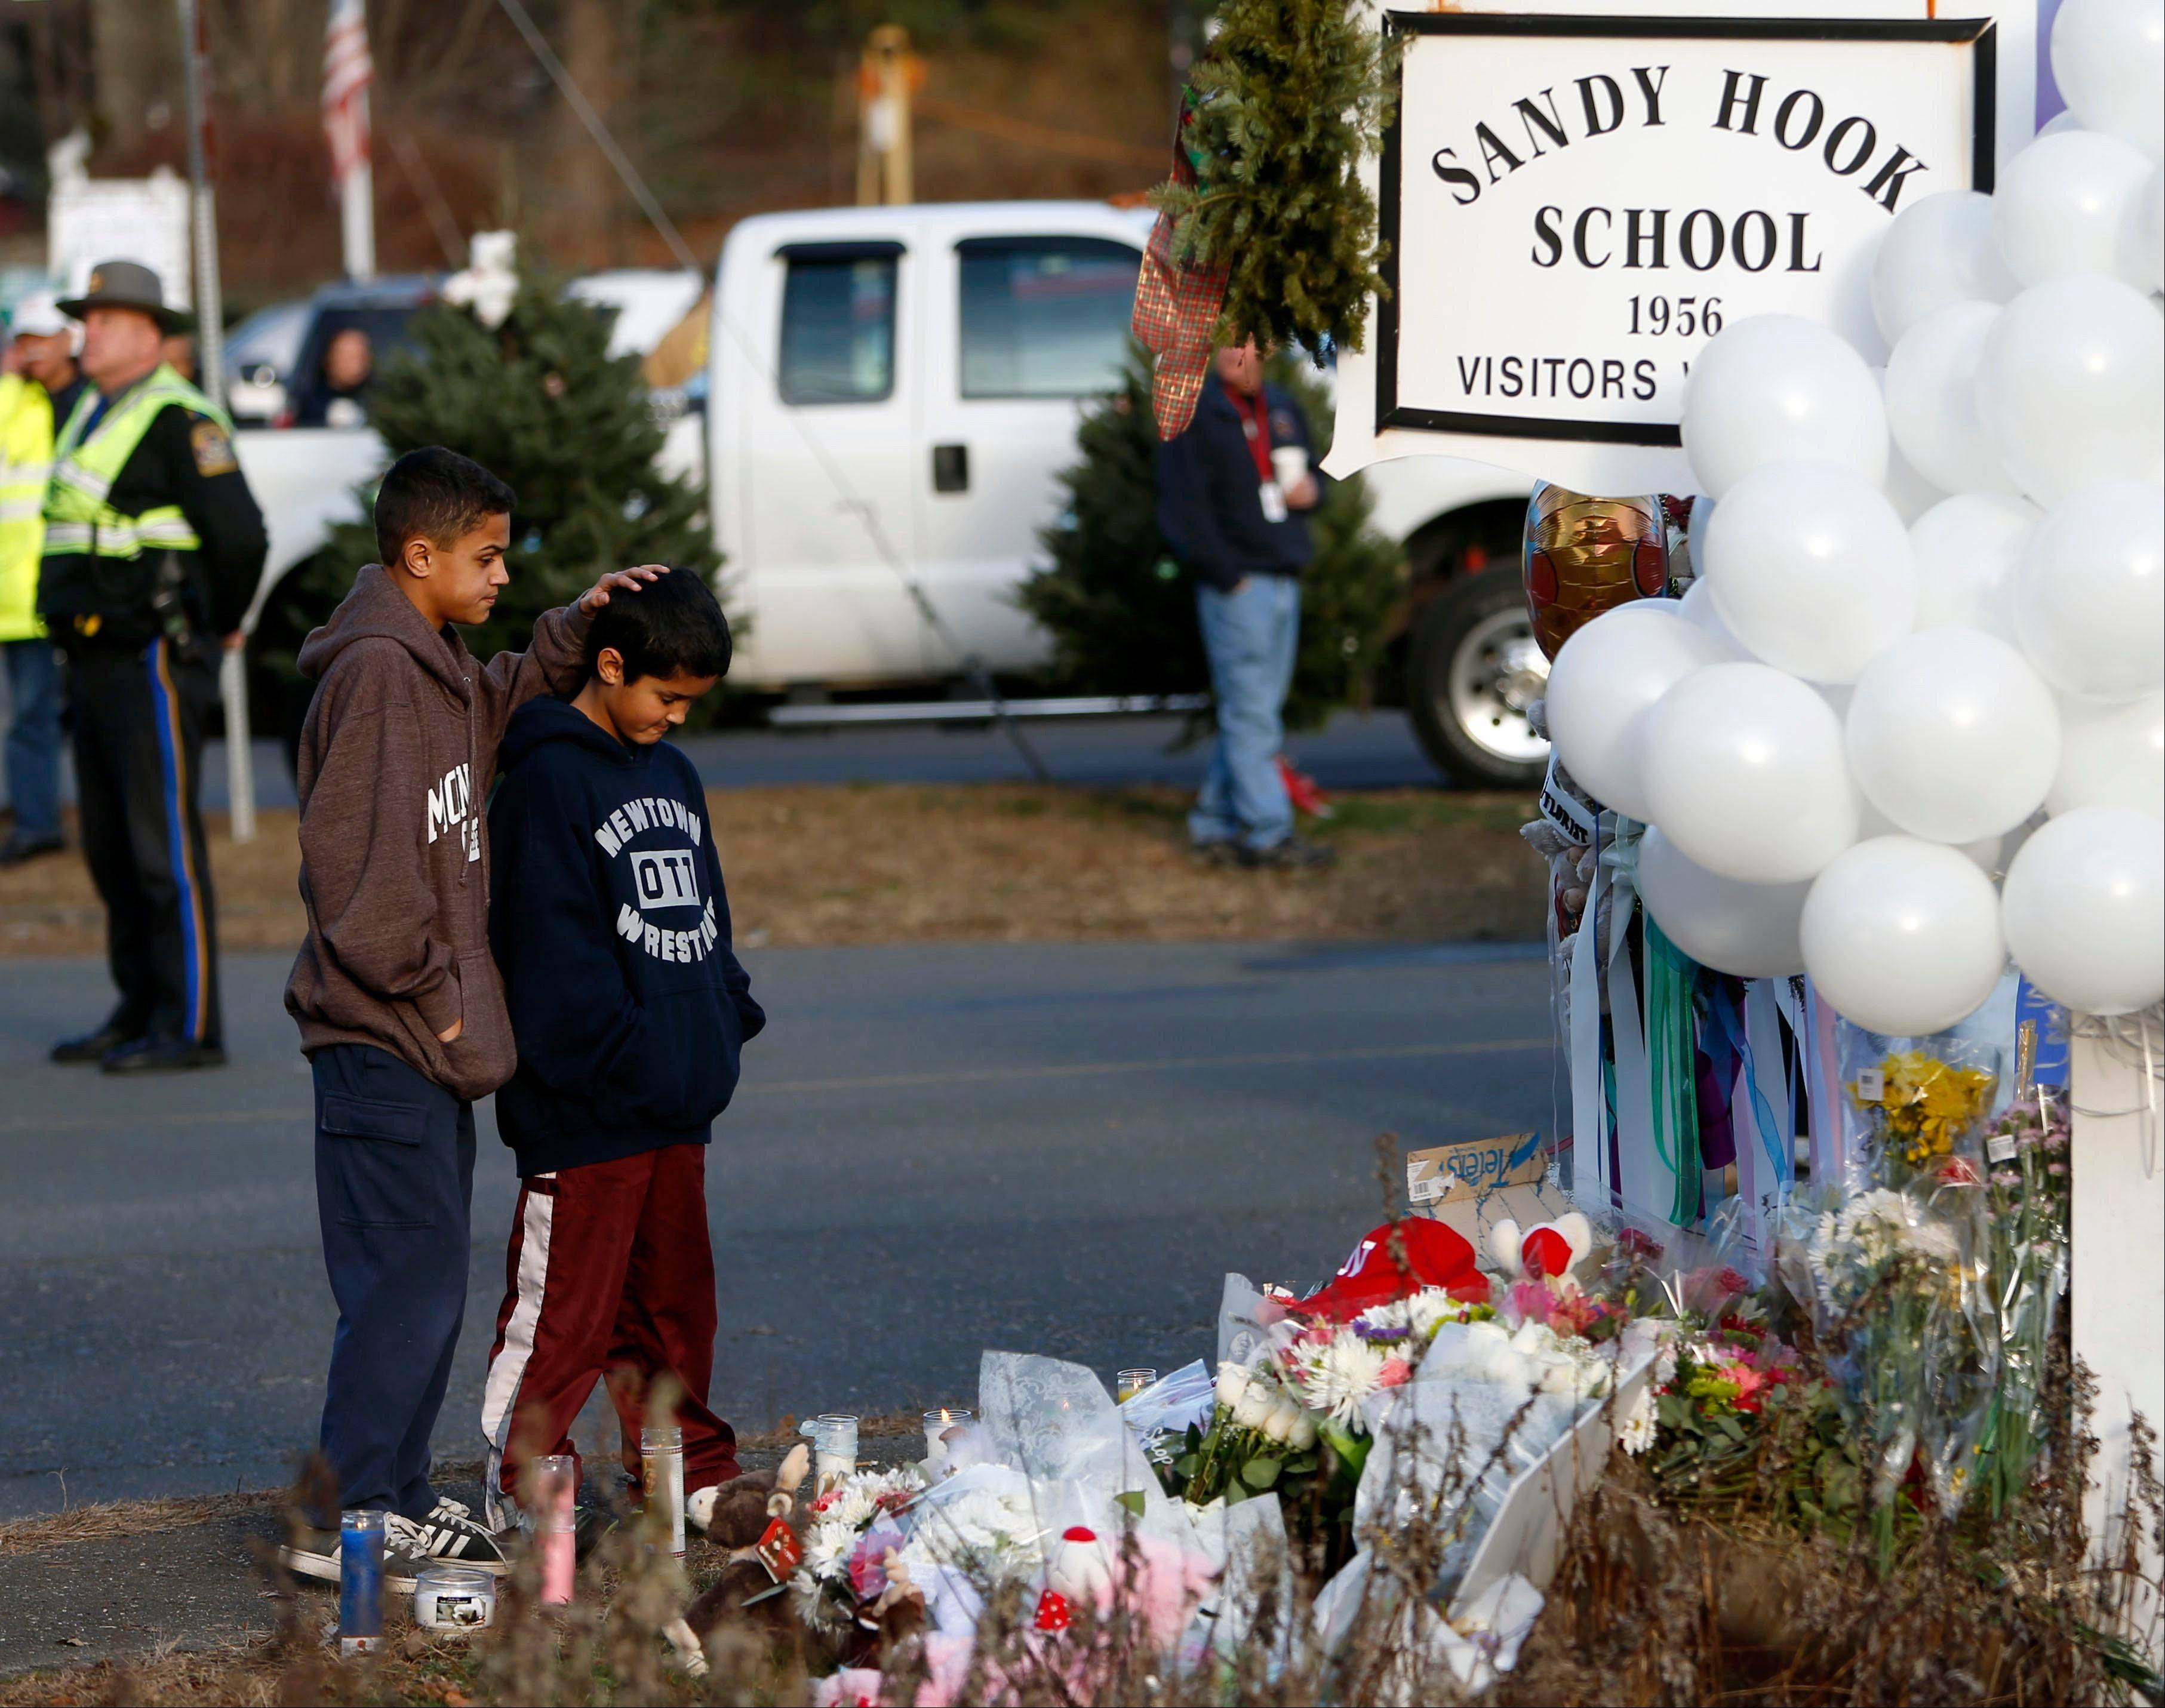 Brothers Thomas, 13, left, and Steven Leuci, 9, pay their respects at a memorial for shooting victims near Sandy Hook Elementary School in Newtown, Conn. The incident has caused schools nationwide to review their security procedures.